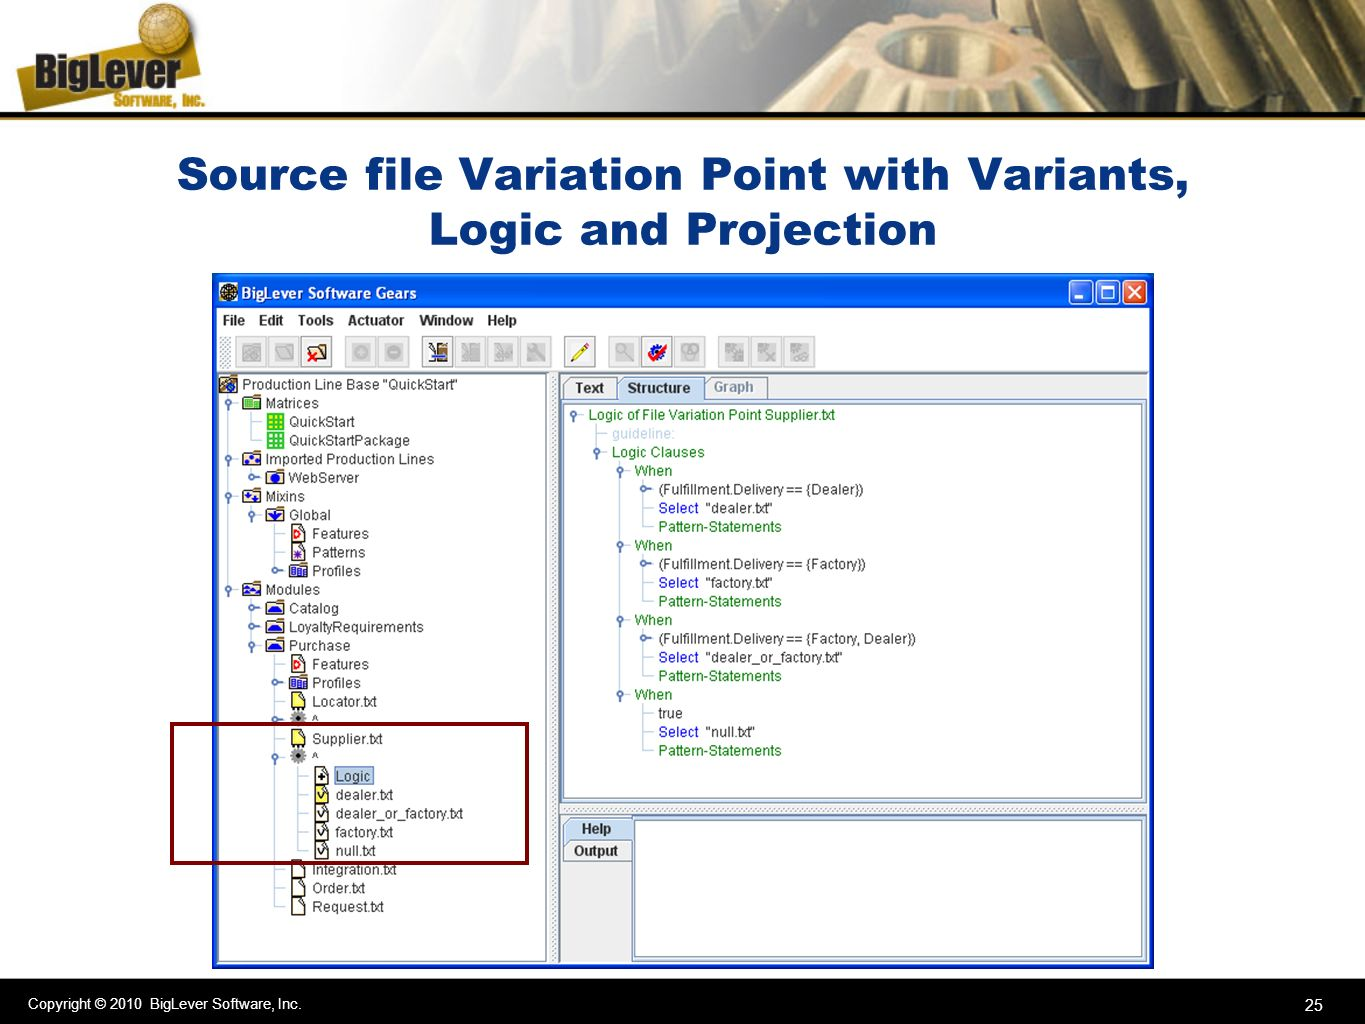 Source file Variation Point with Variants, Logic and Projection